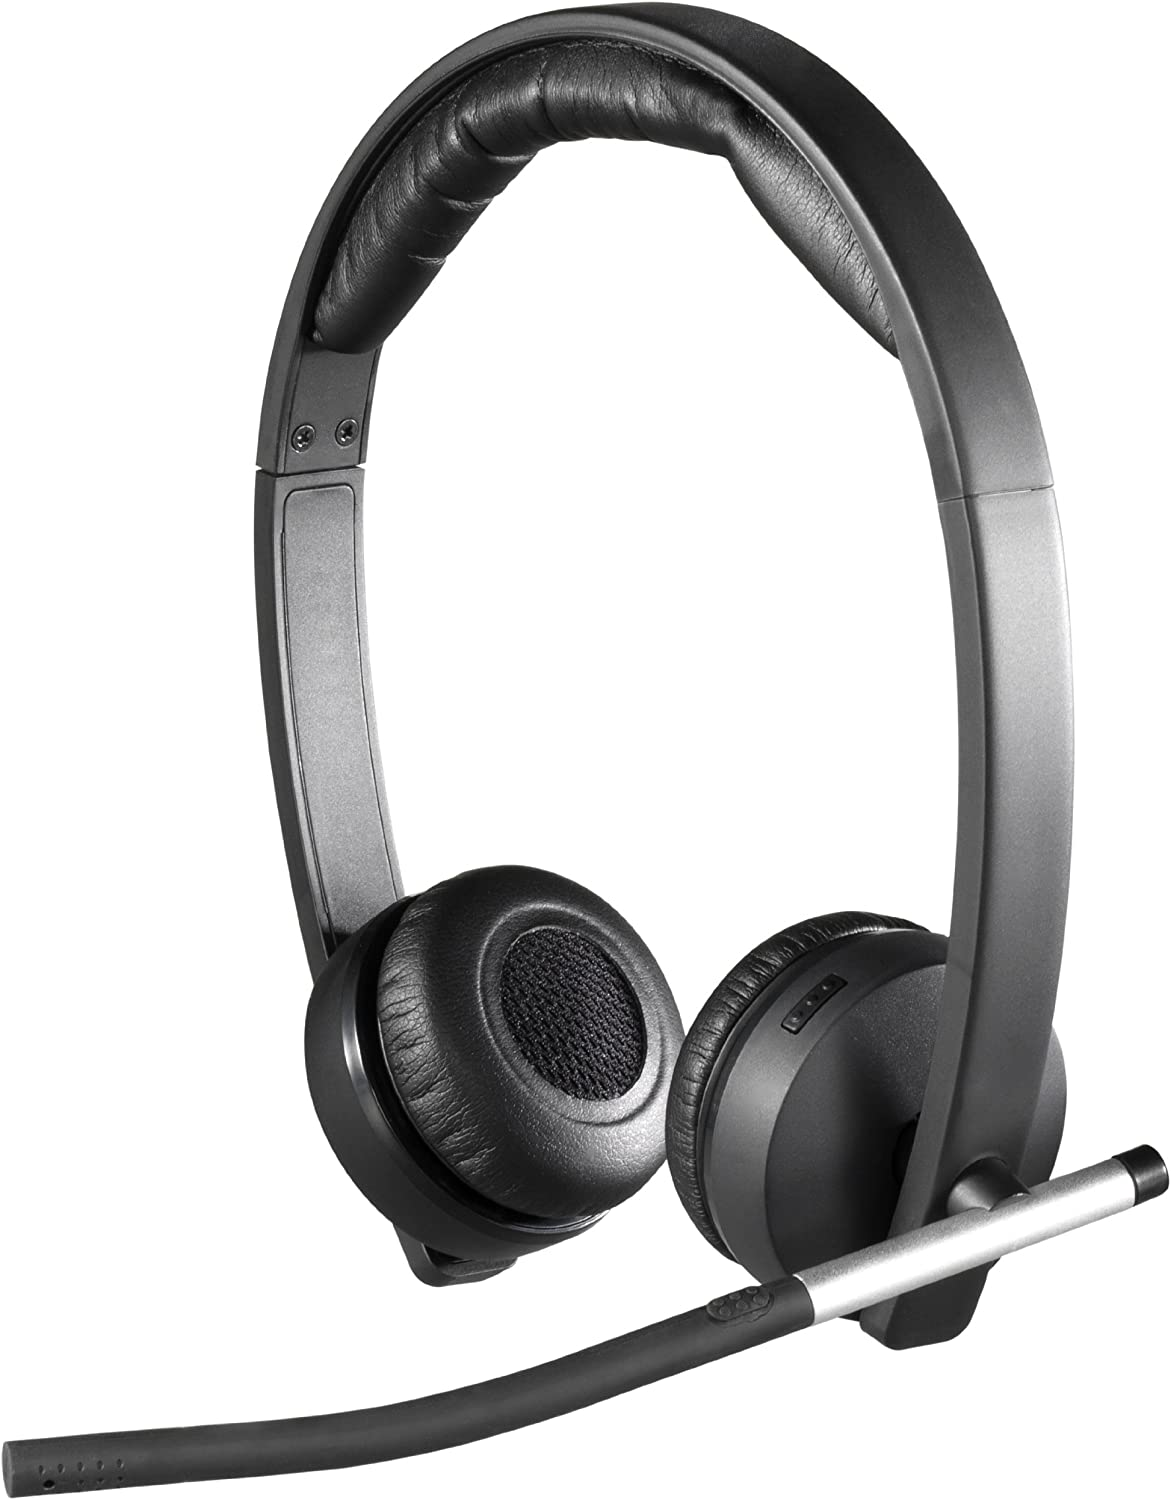 Logitech H820e Wireless Dual Headset - Black